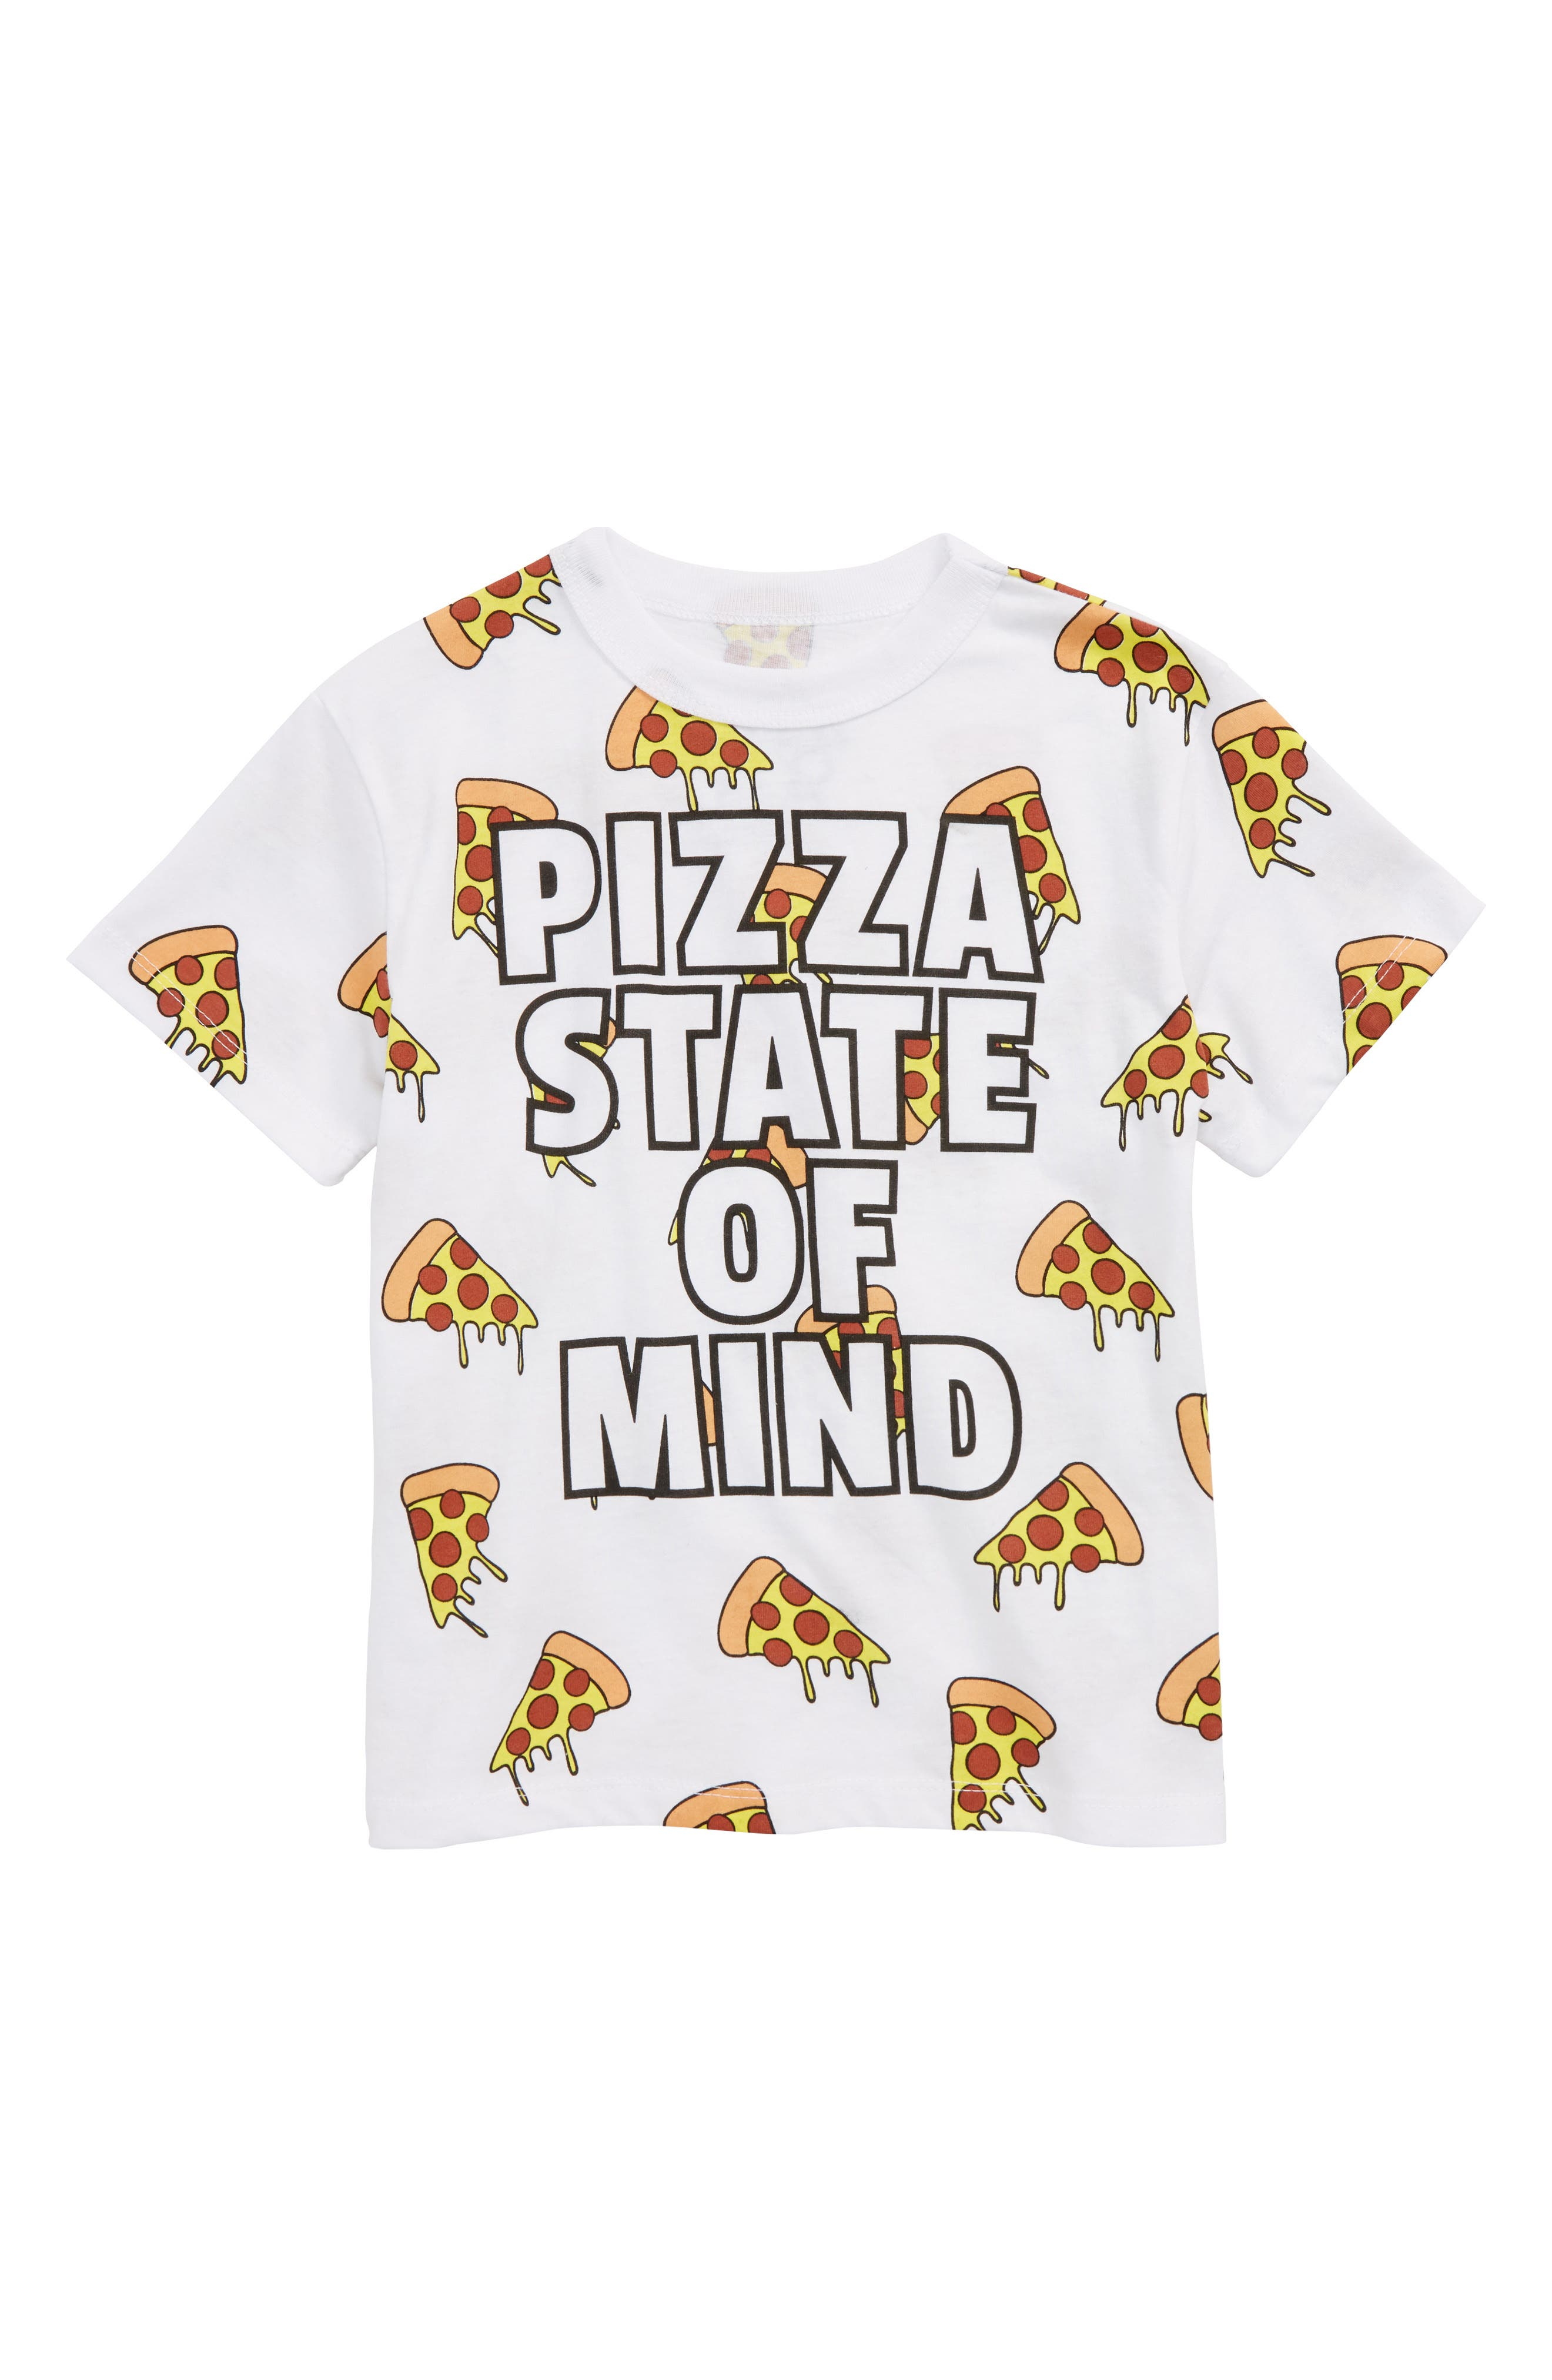 Pizza State of Mind T-Shirt,                             Main thumbnail 1, color,                             100